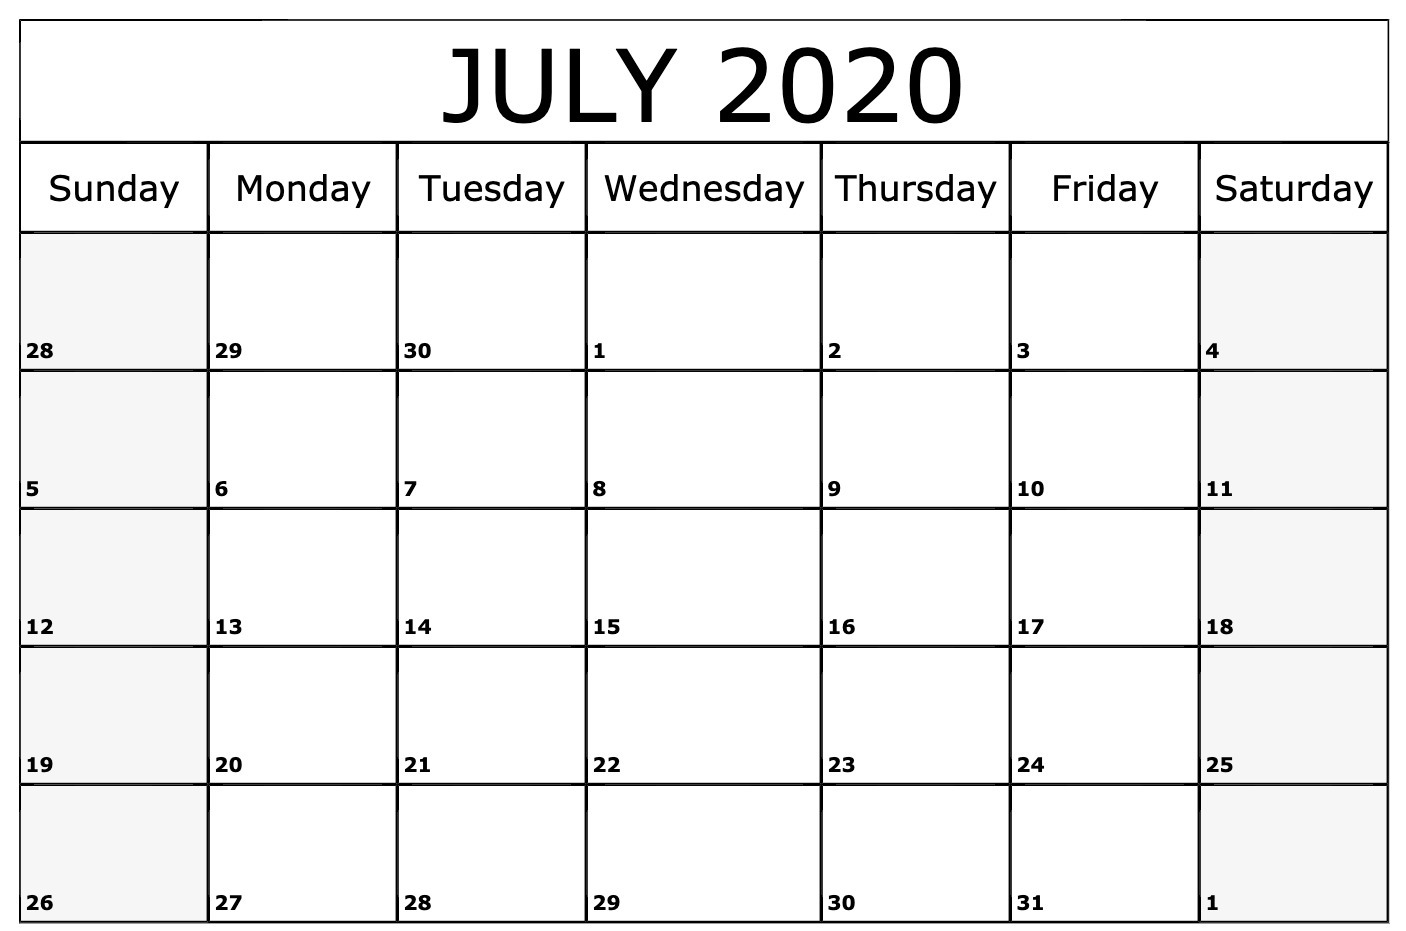 July 2020 Calendar Printable Template